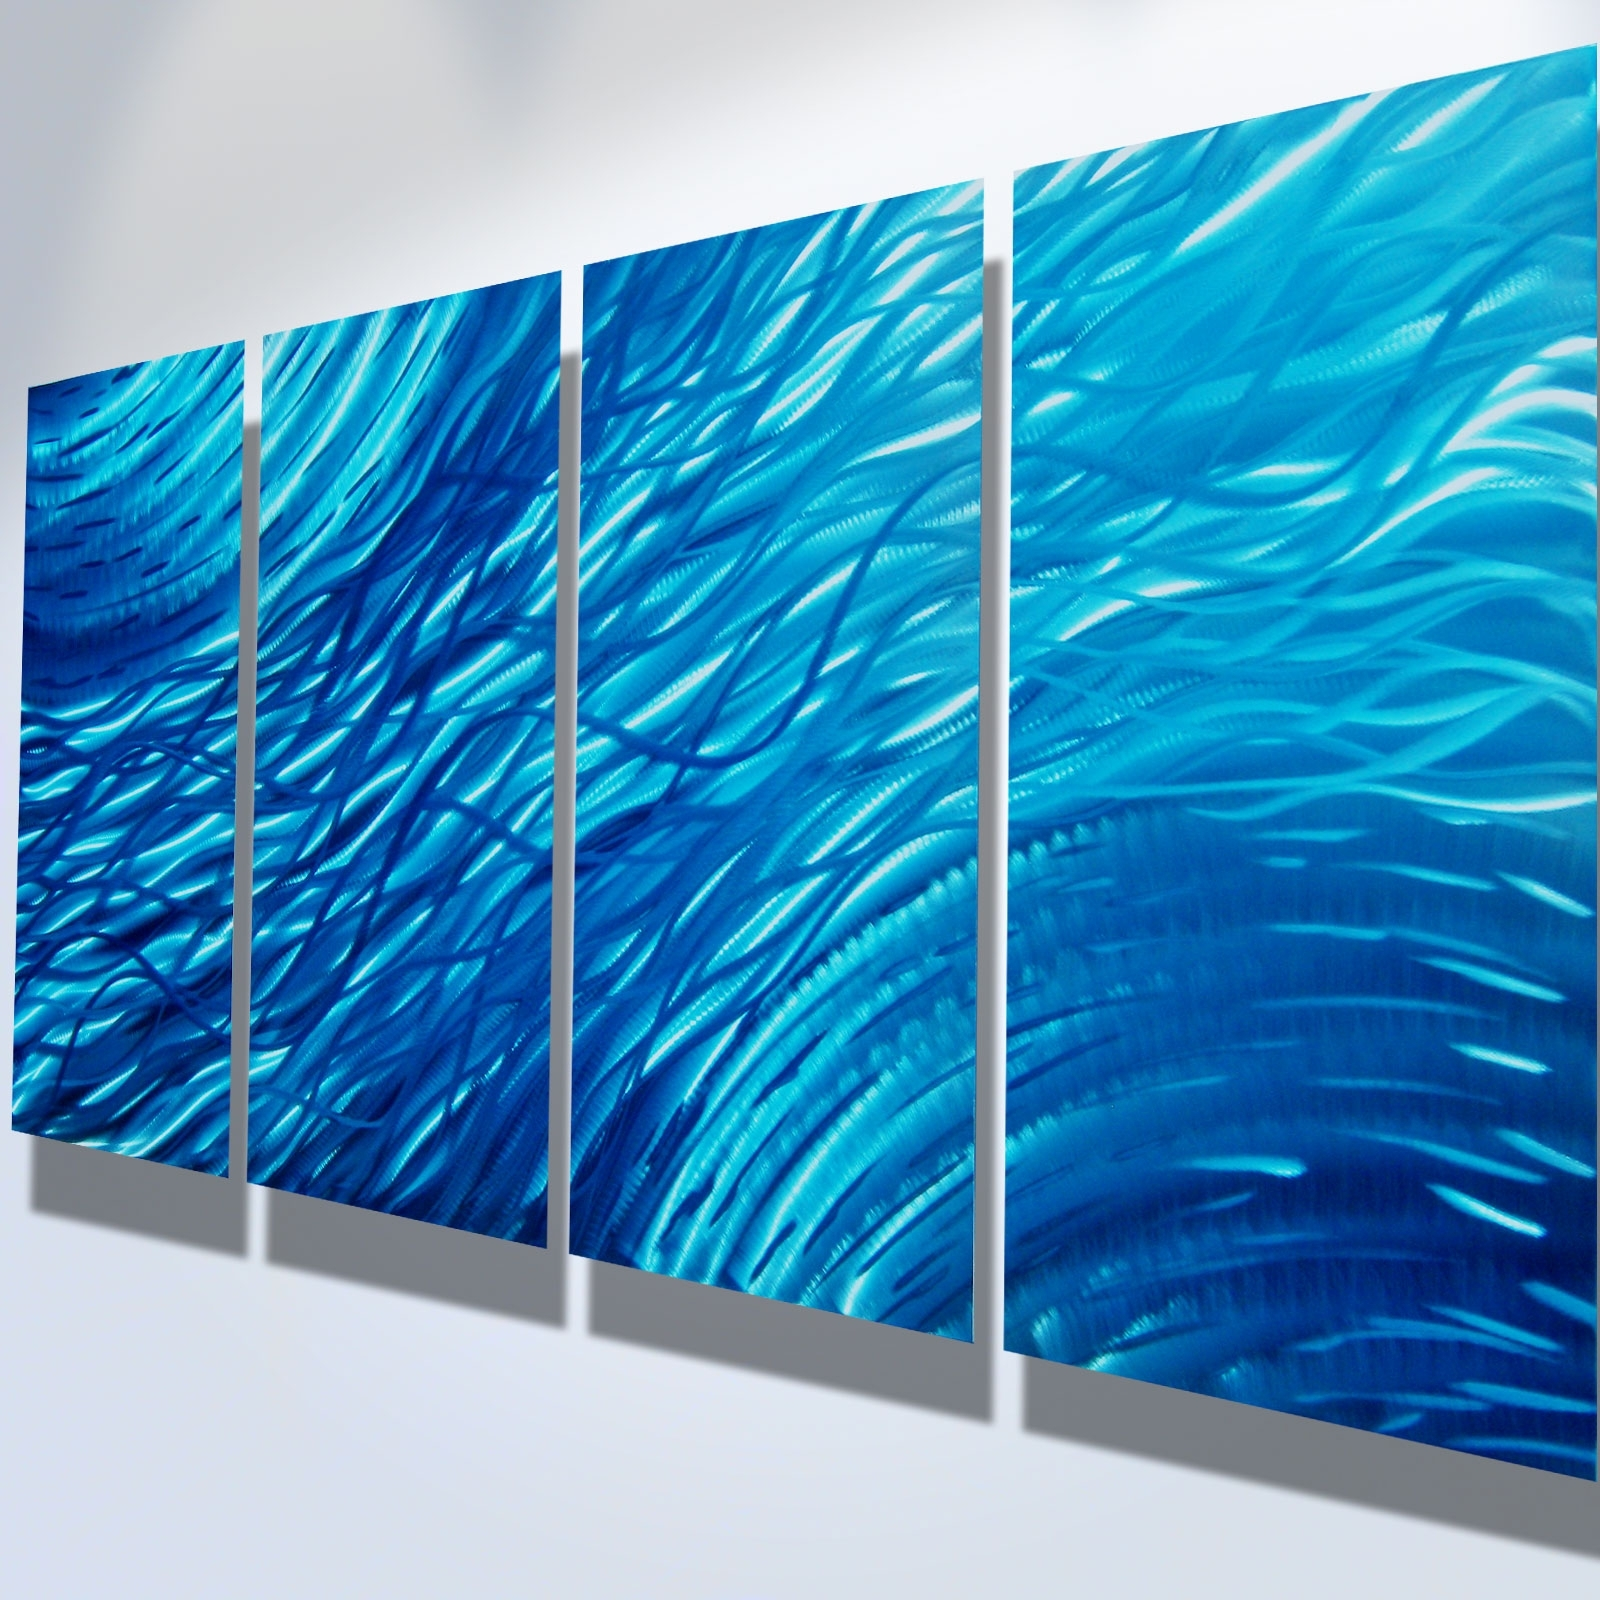 Ocean  Metal Wall Art Abstract Contemporary Modern Decor With Regard To Best And Newest Abstract Ocean Wall Art (View 16 of 20)